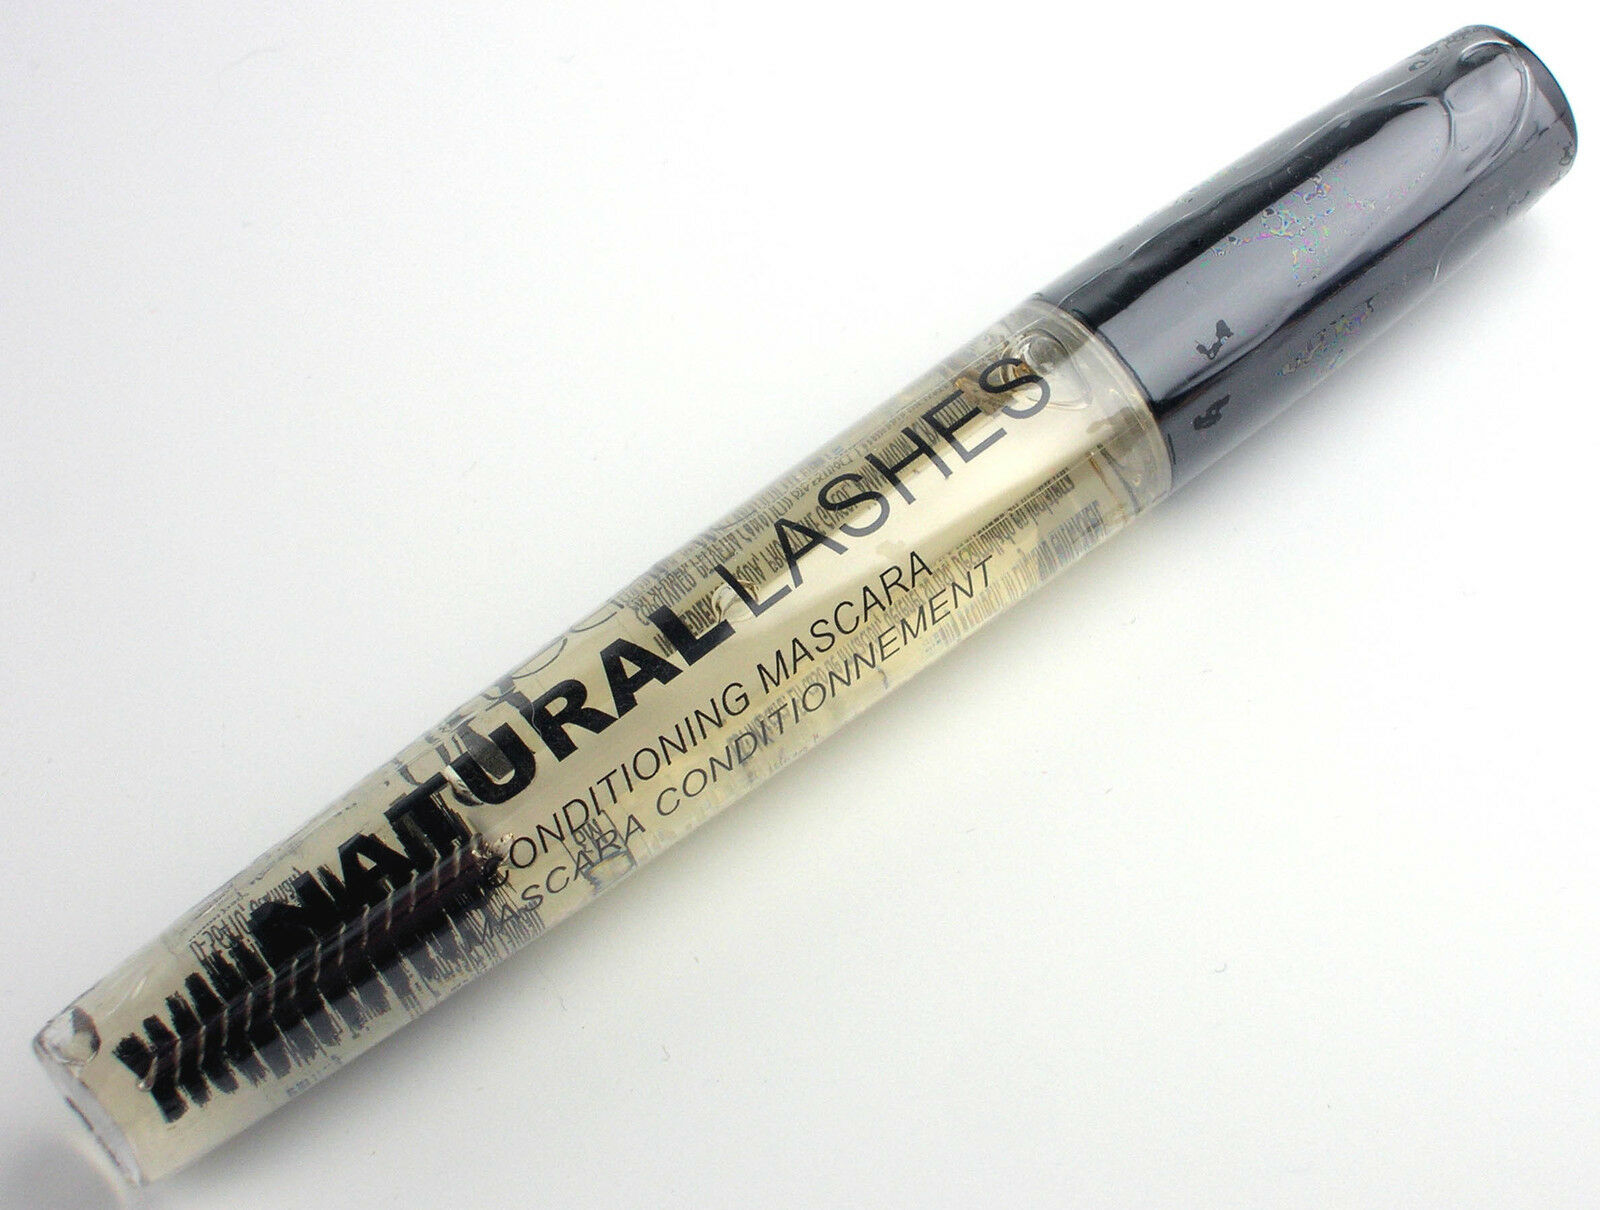 Natural Lashes Clear Mascara Brow Gel Conditioning Eyebrow Groomer